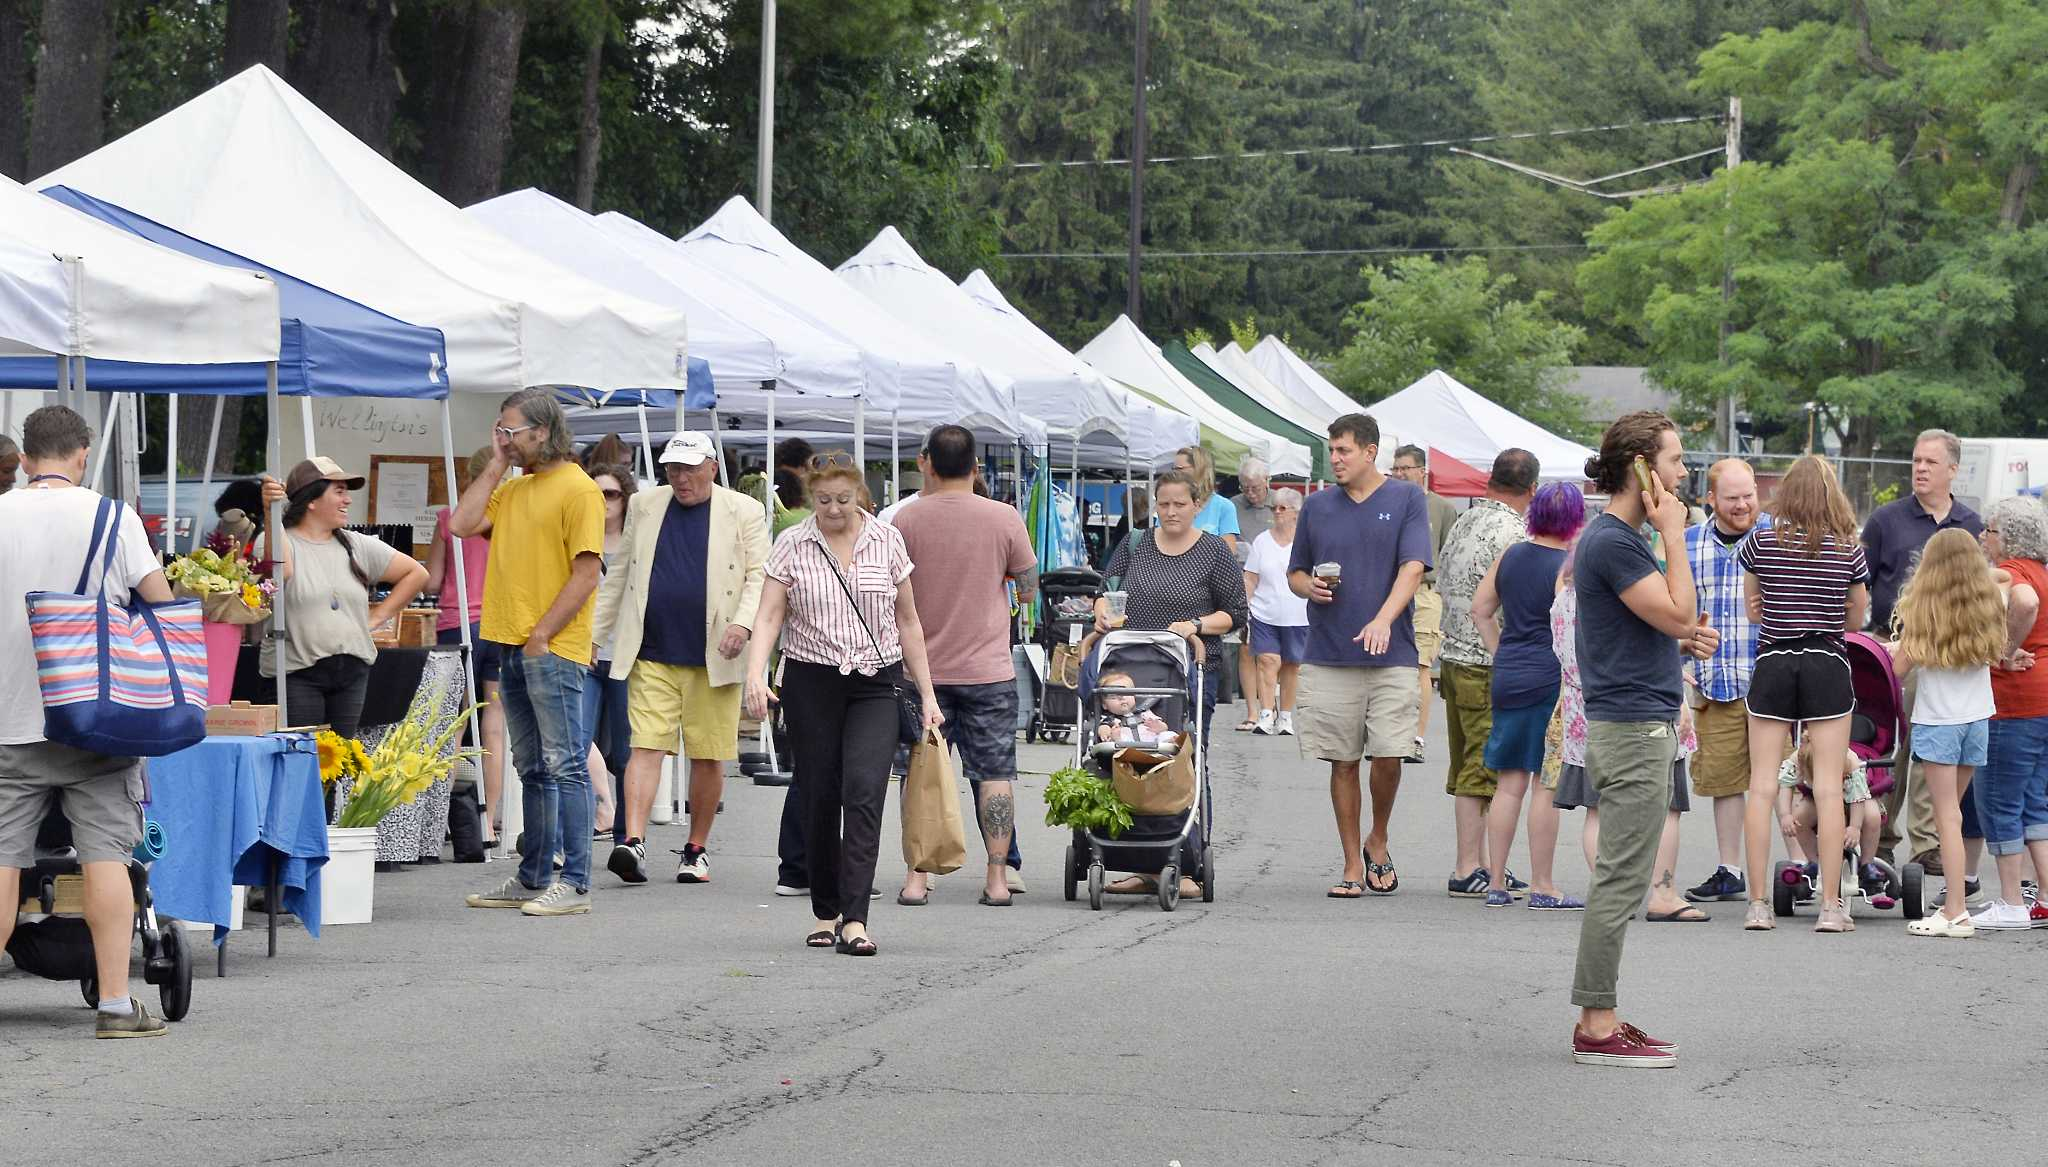 Niskayuna farmers' market plans to open next year off town property - Times Union